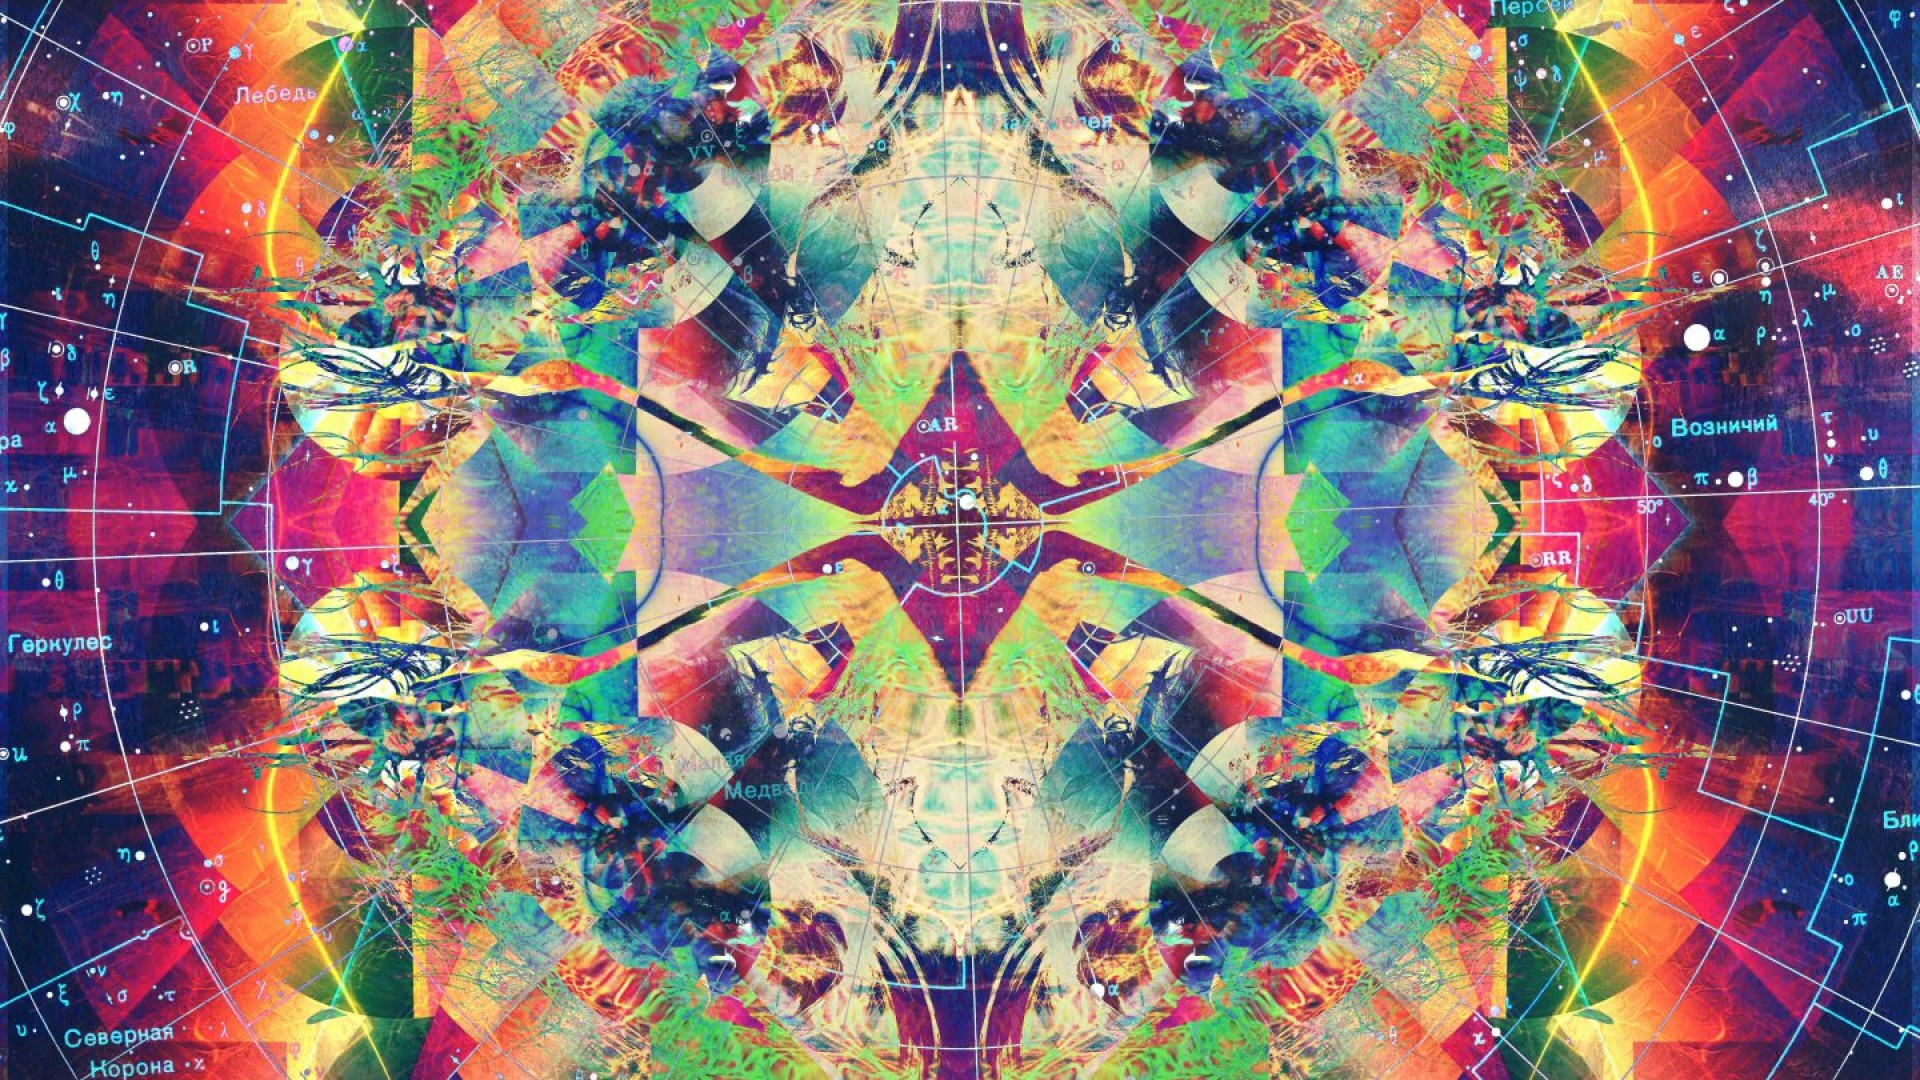 Trippy Abstract Cool Colorful Hd Wallpaper For Desktop And